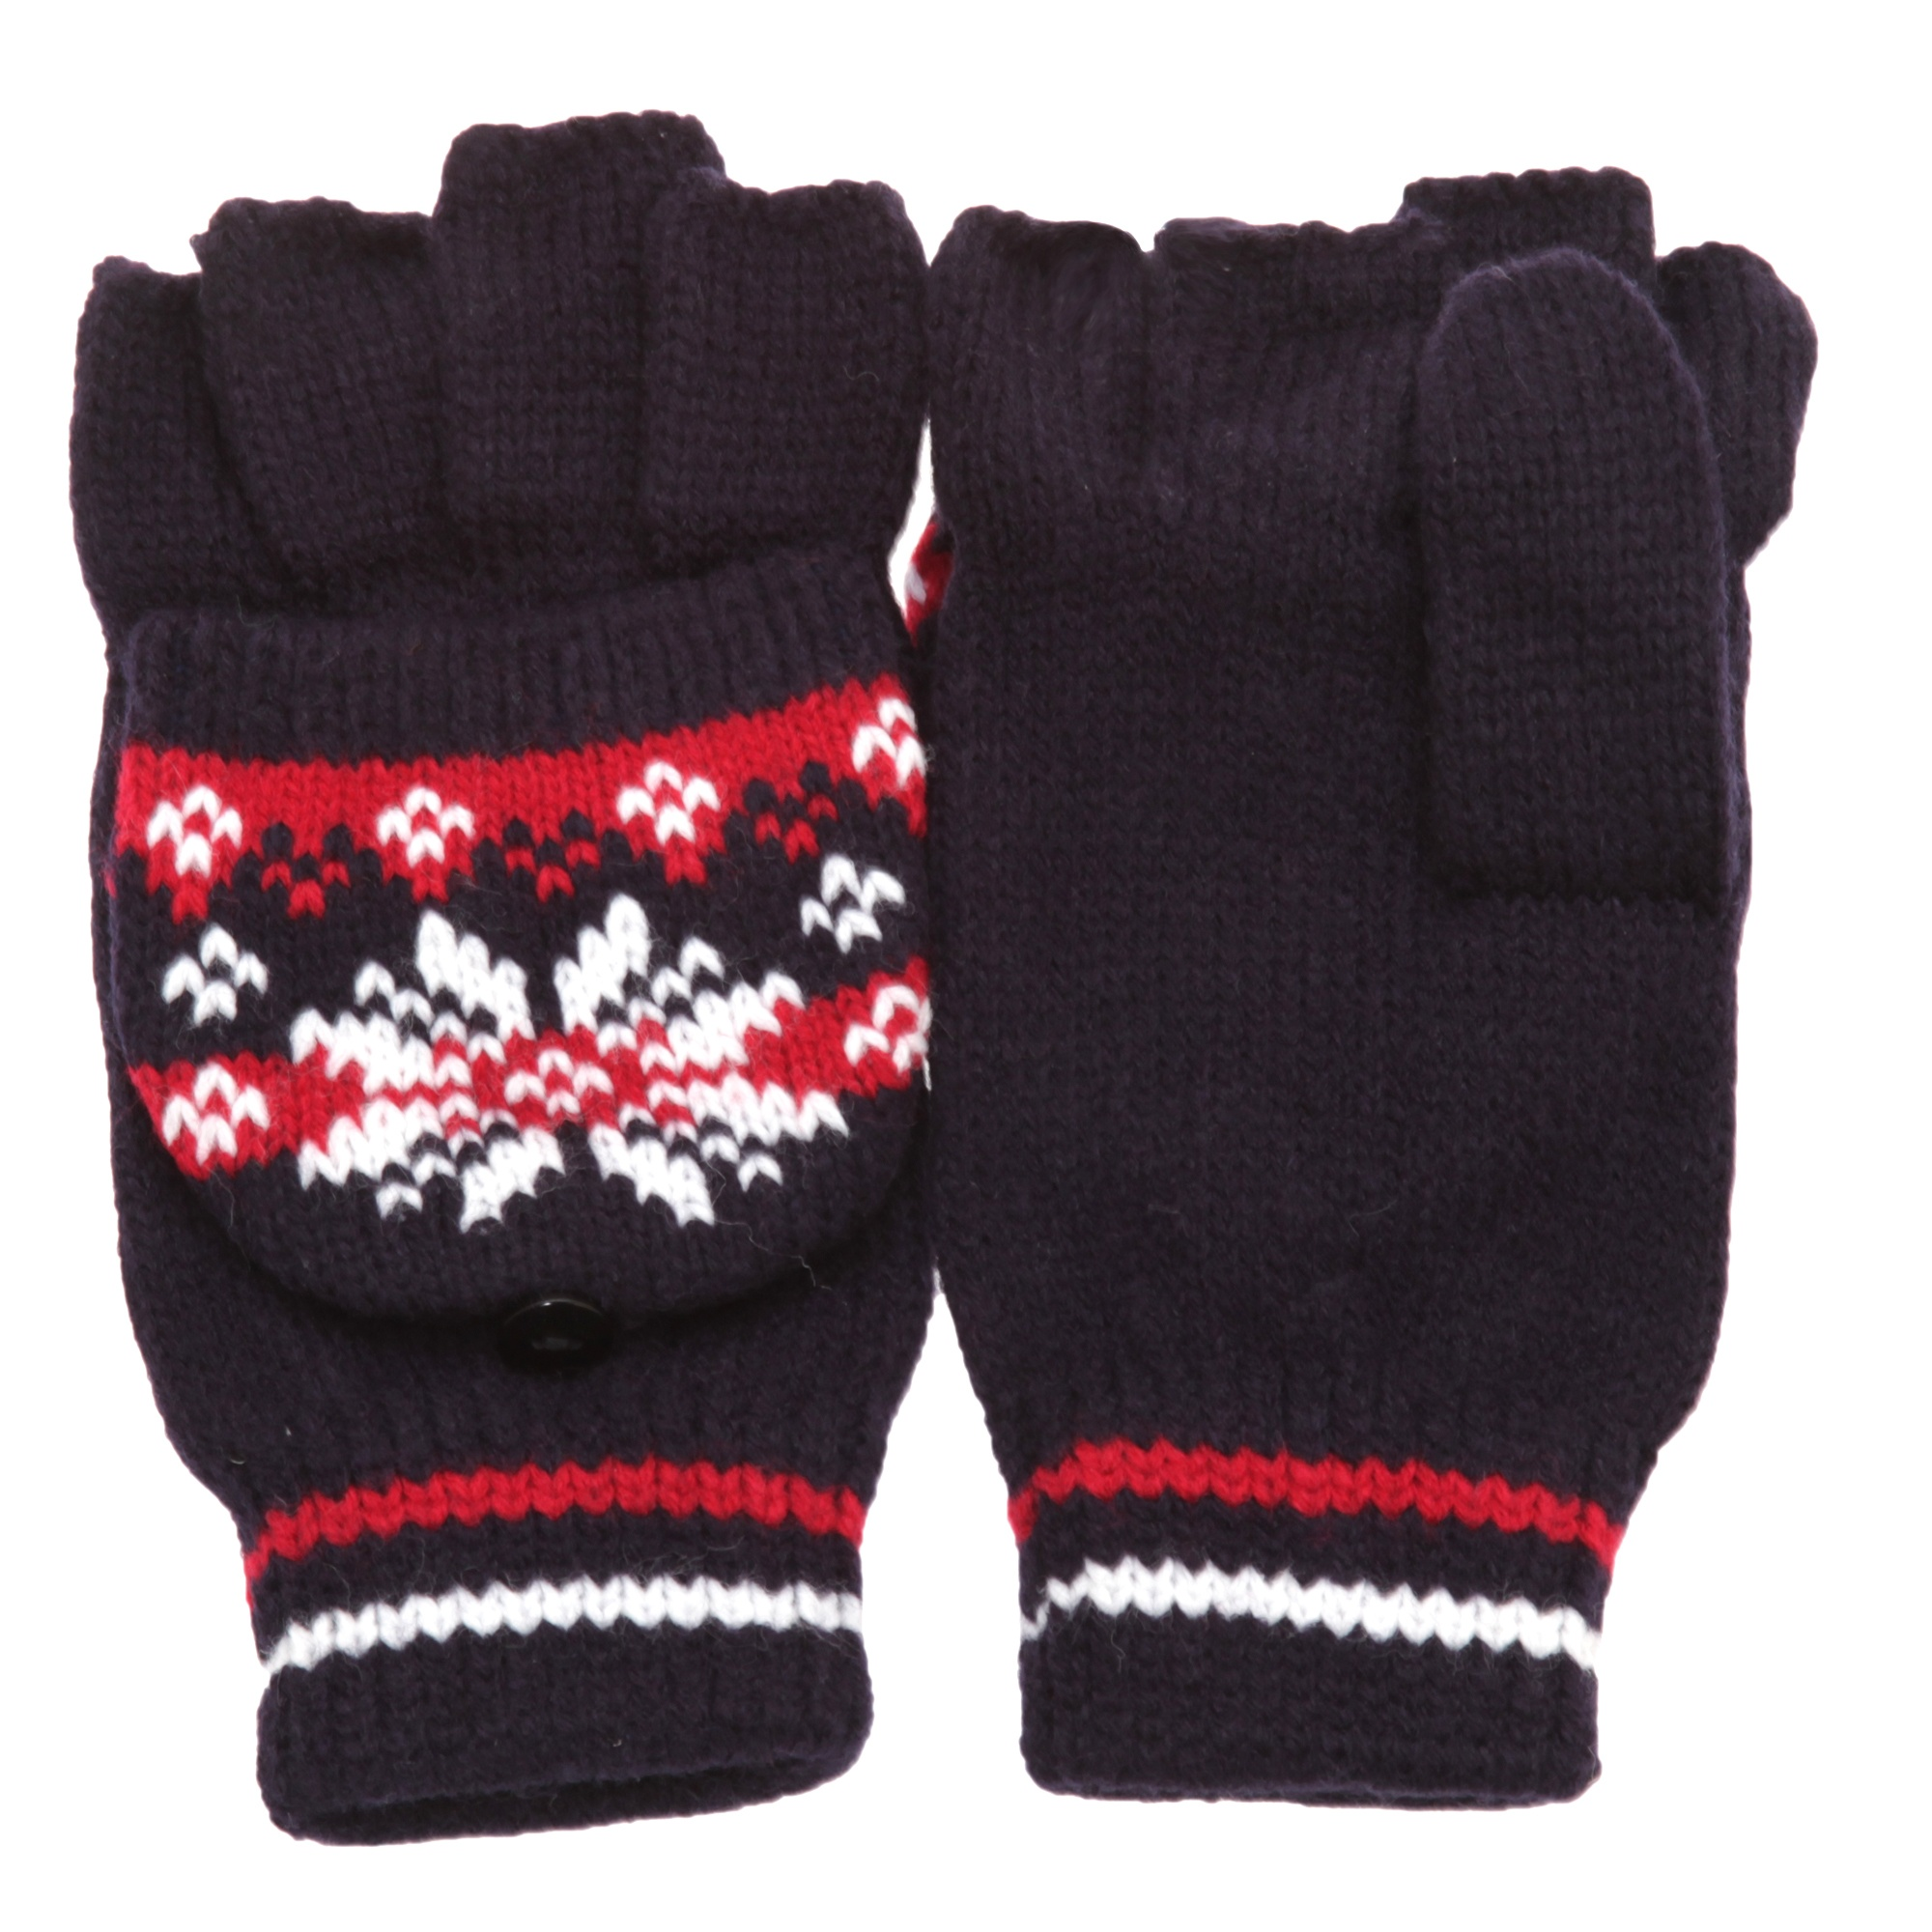 Womens /Ladies Knit Design Patterned Capped Fingerless ...